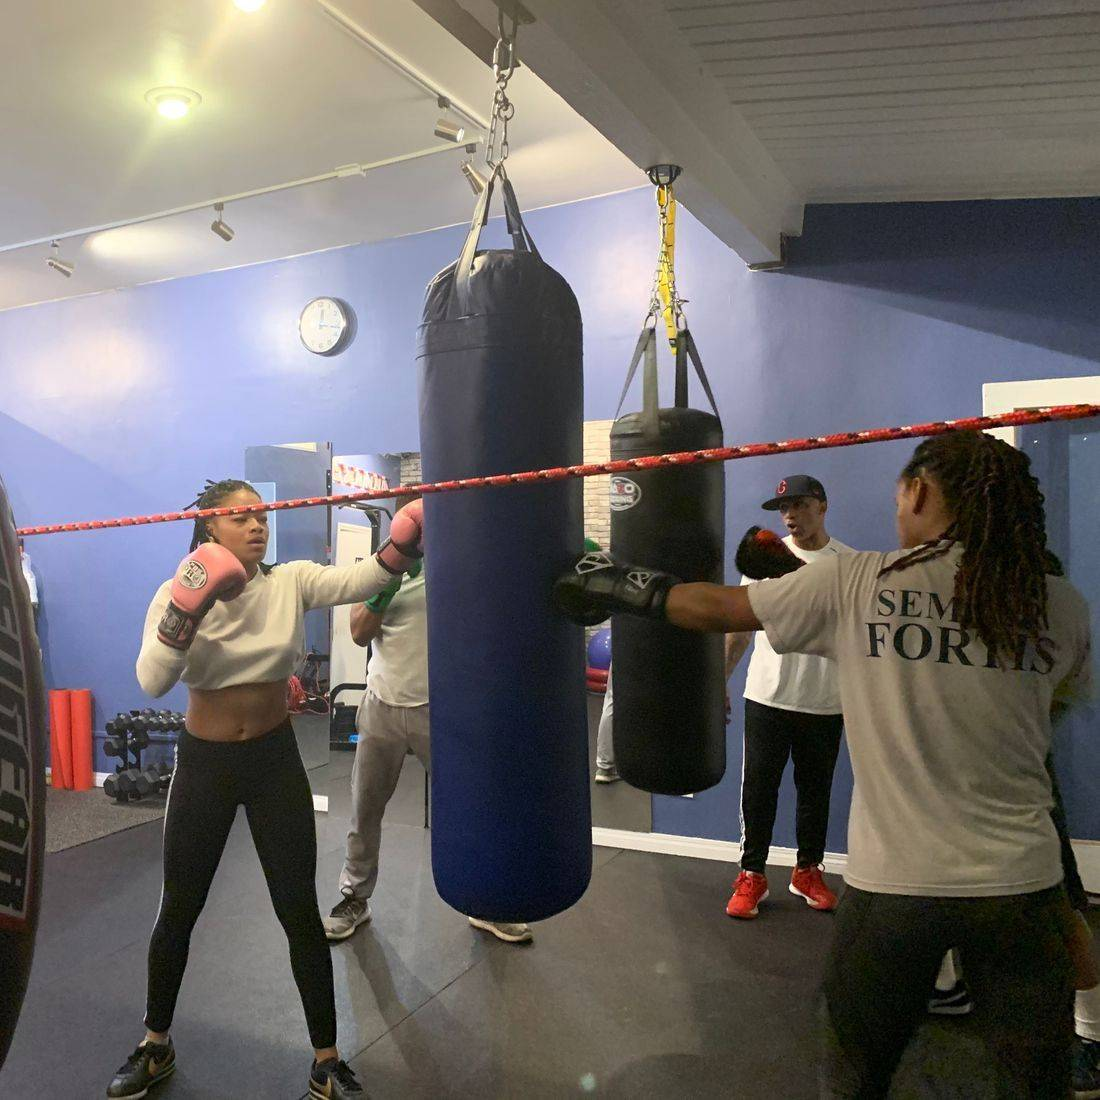 Hey Debbie! I hope you're having a great weekend. Here are the details and class summary for what we are doing. I so appreciate you for helping me. Let me know if these details are OK.  Beginners Boxing Class  Class Day: Thursday 12/19 Class Time: 7pm  Description:  Boxing Conditioning classes will teach you basic boxing skills and techniques and are designed to increase muscular strength and cardio endurance, making this class the perfect option to get shredded! Boxing Conditioning will include cardio calisthenics, shadow boxing, bag work and core strengthening exercises.